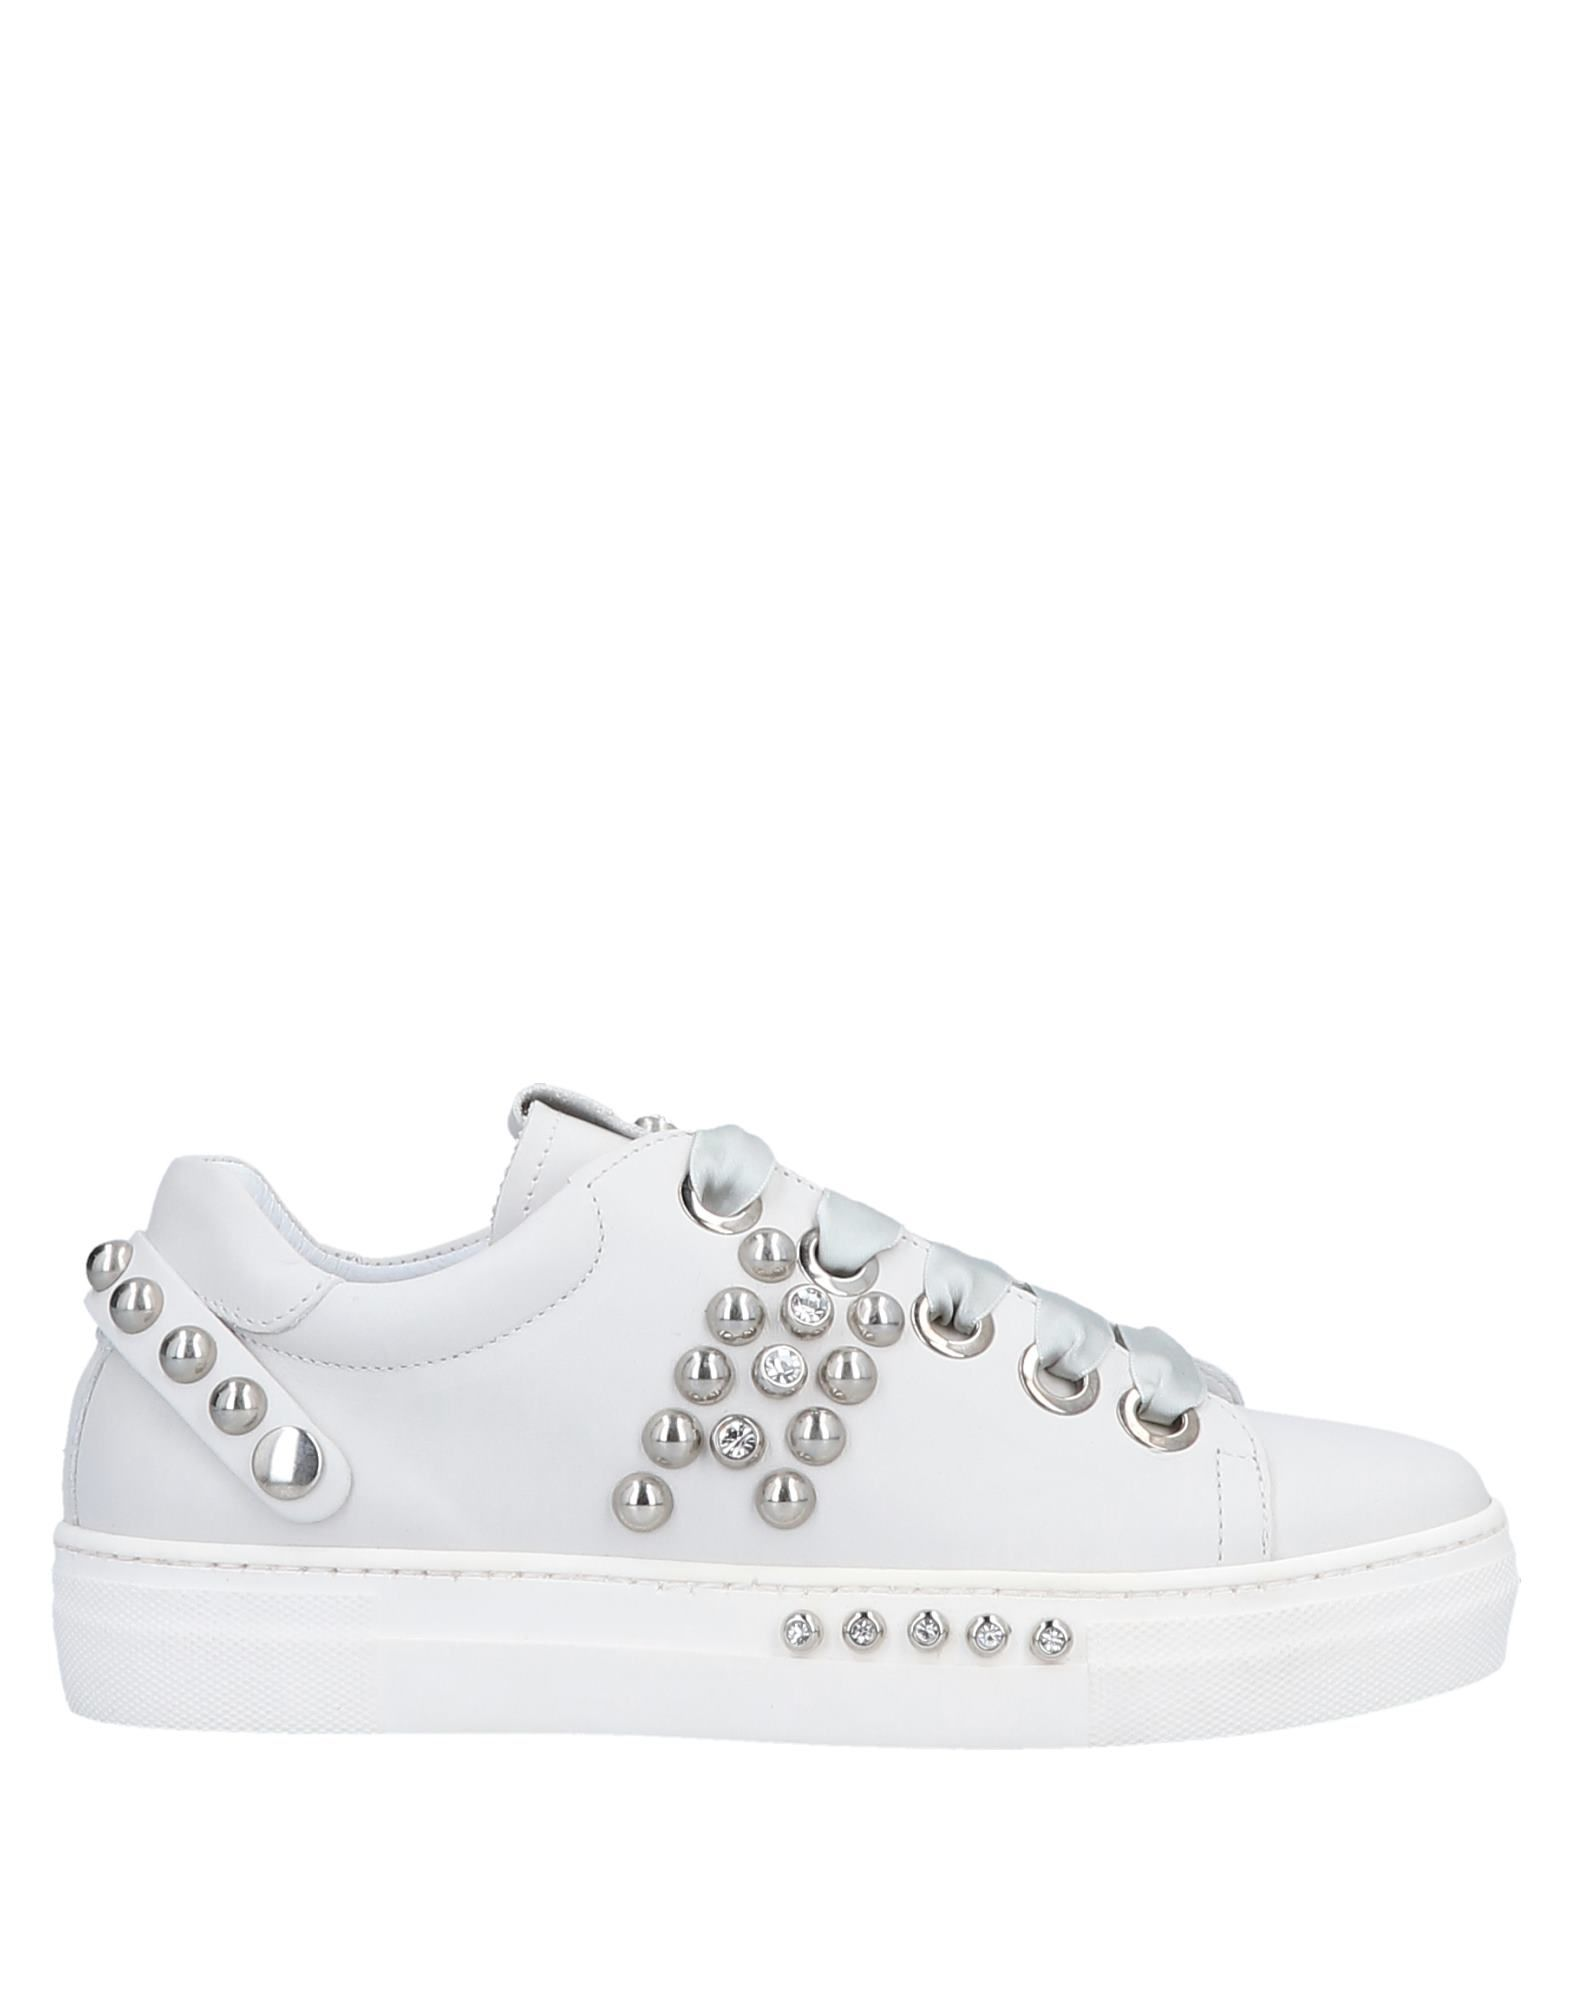 Ovye' By Cristina Lucchi Sneakers - Women Ovye' By Cristina  Lucchi Sneakers online on  Cristina Canada - 11564832VT c2d86e